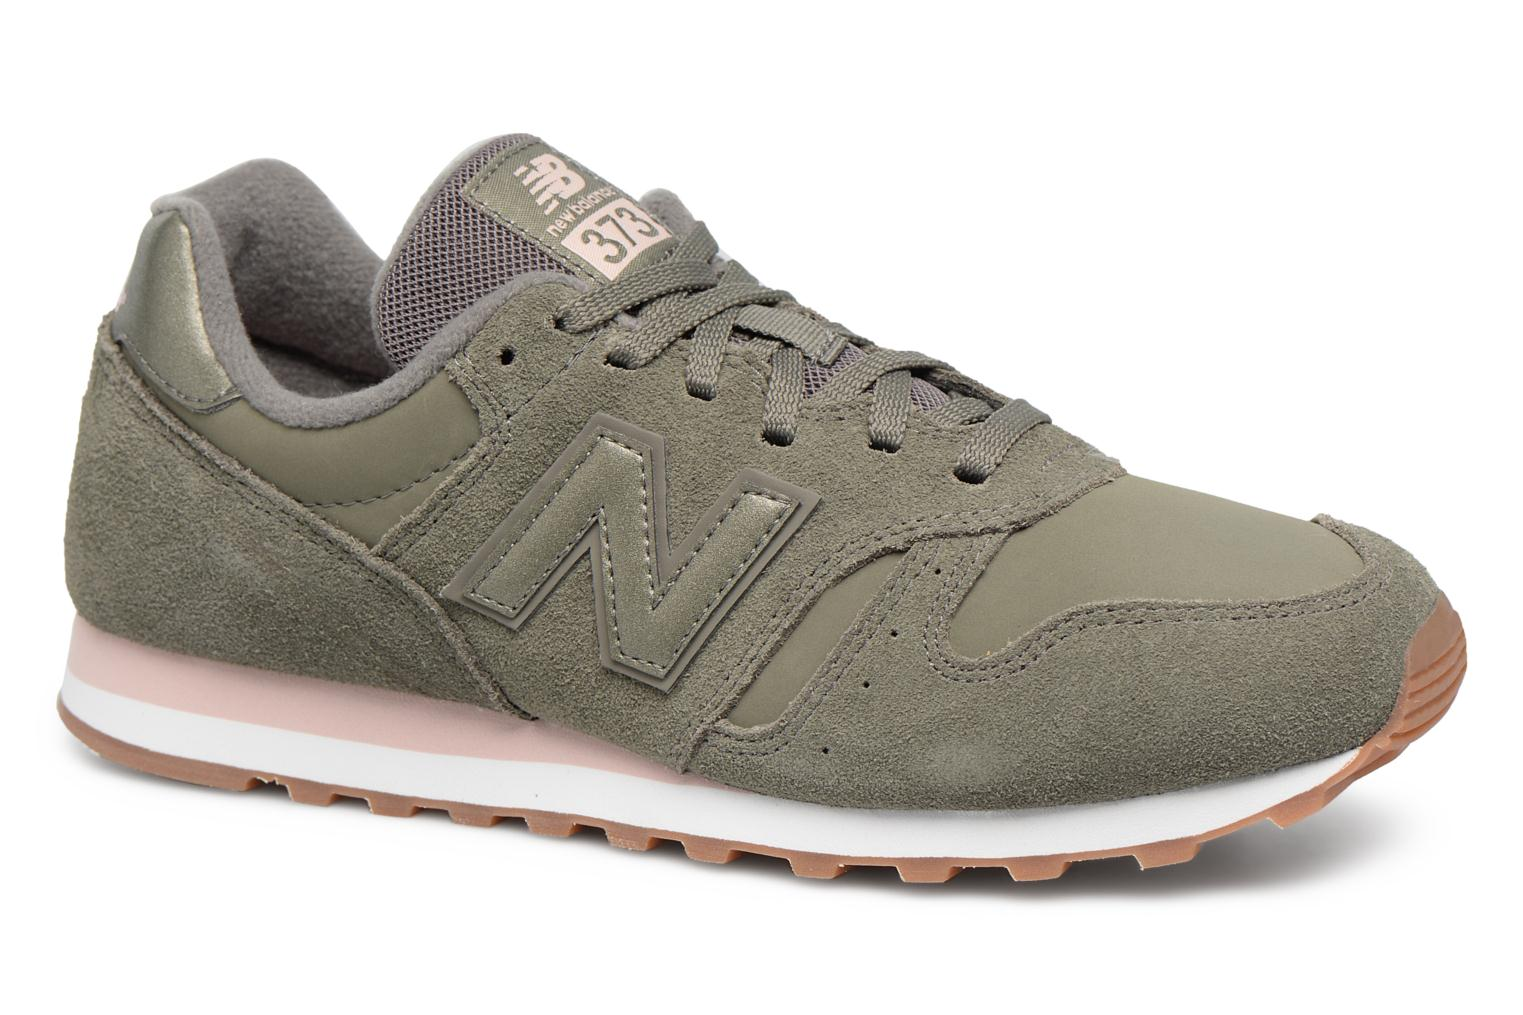 373, Baskets Femme, Marron (Light Khaki), 38 EUNew Balance